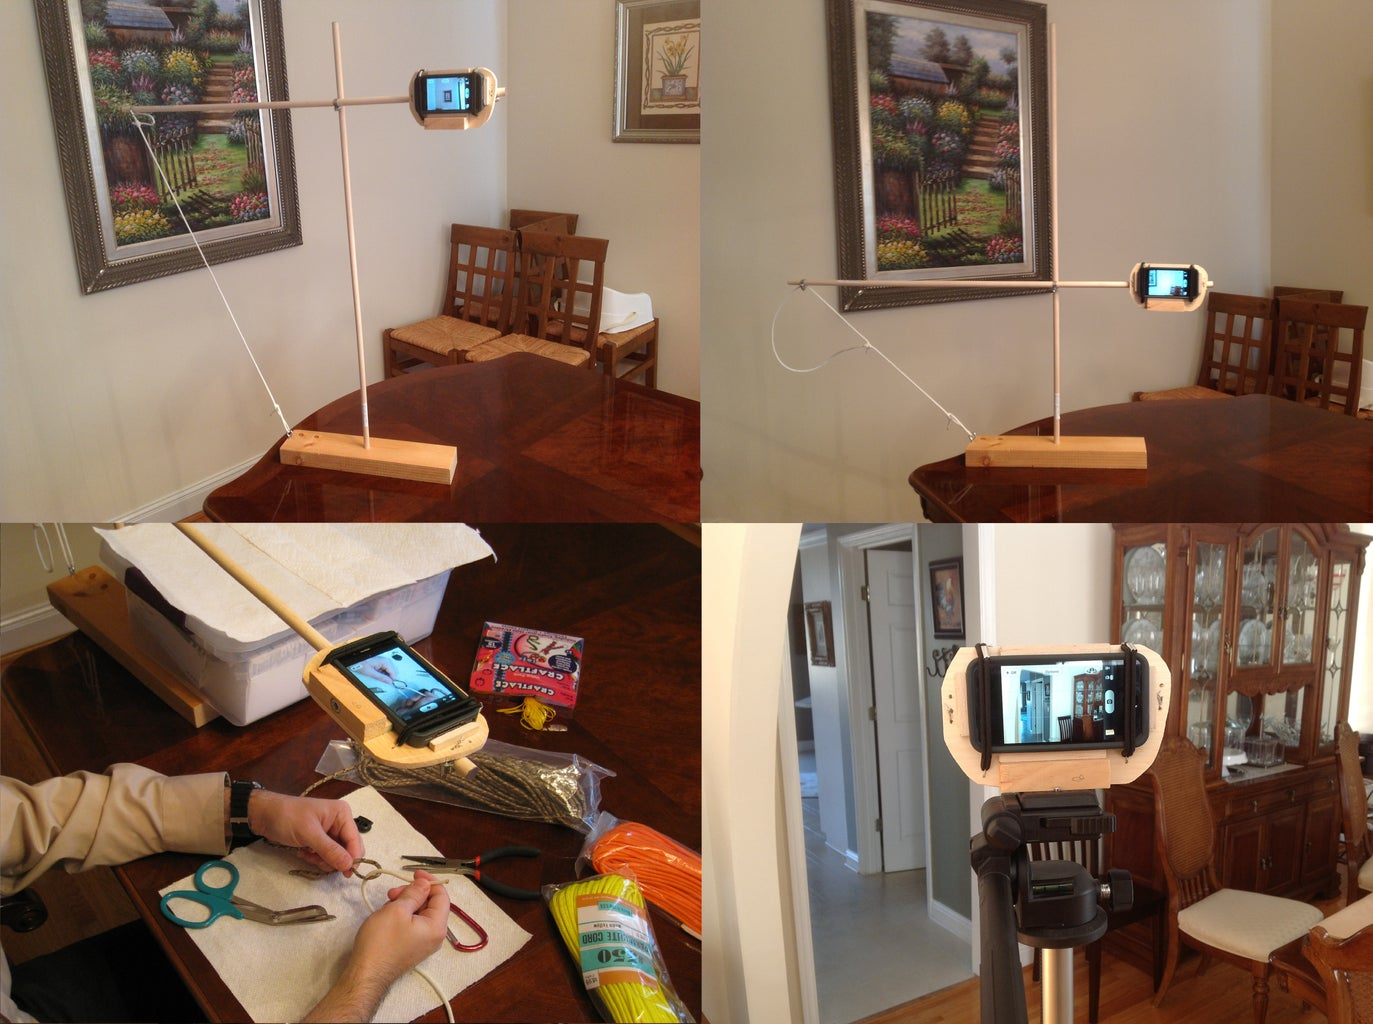 How to Make a Cell Phone / IPhone Camera Boom and Tripod